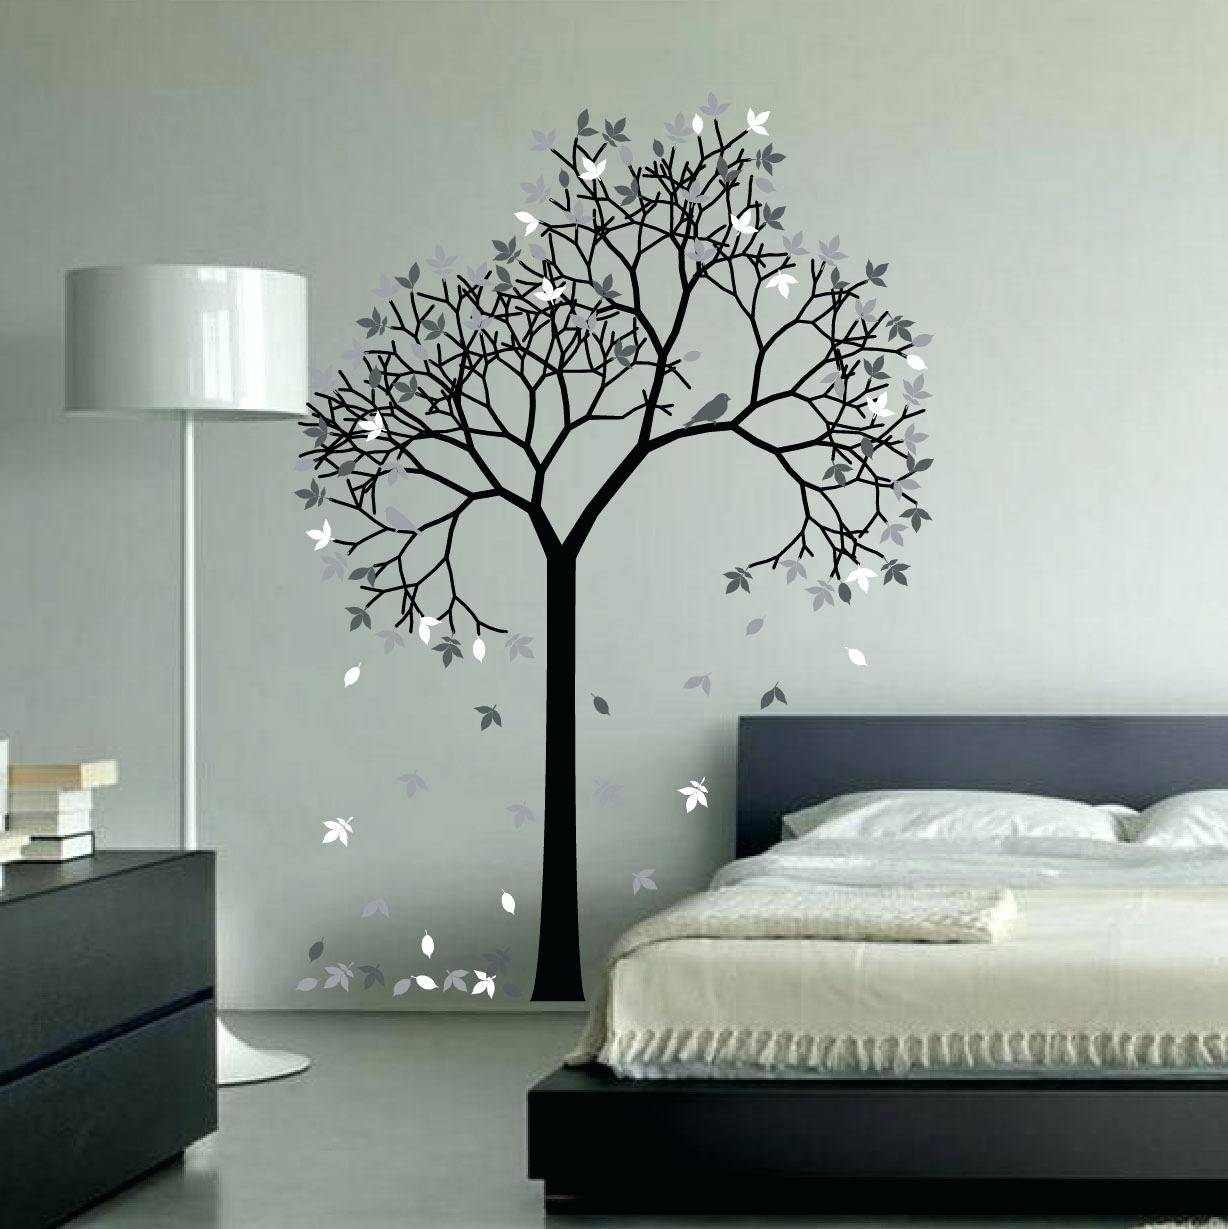 Computer Wall Decals Aspen Tree Wall Decal Sticker Vinyl Art With Best And Newest Computer Wall Art (Gallery 9 of 20)